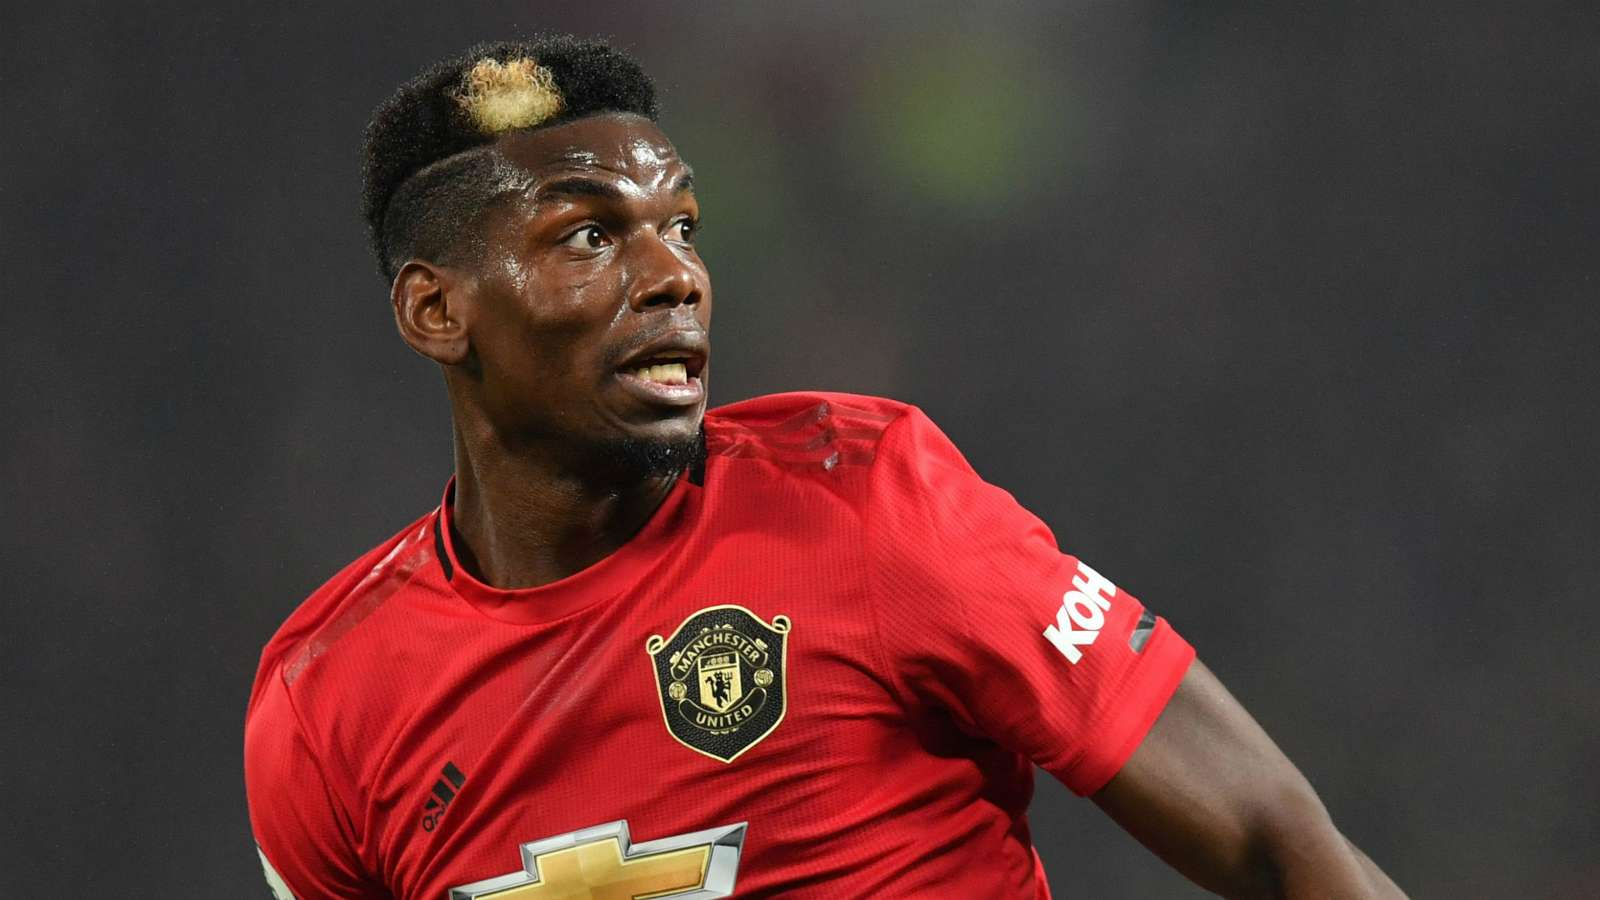 Man Utd Transfers: 5 Central Midfielders the Red Devils Could Realistically Target This Summer - Bóng Đá